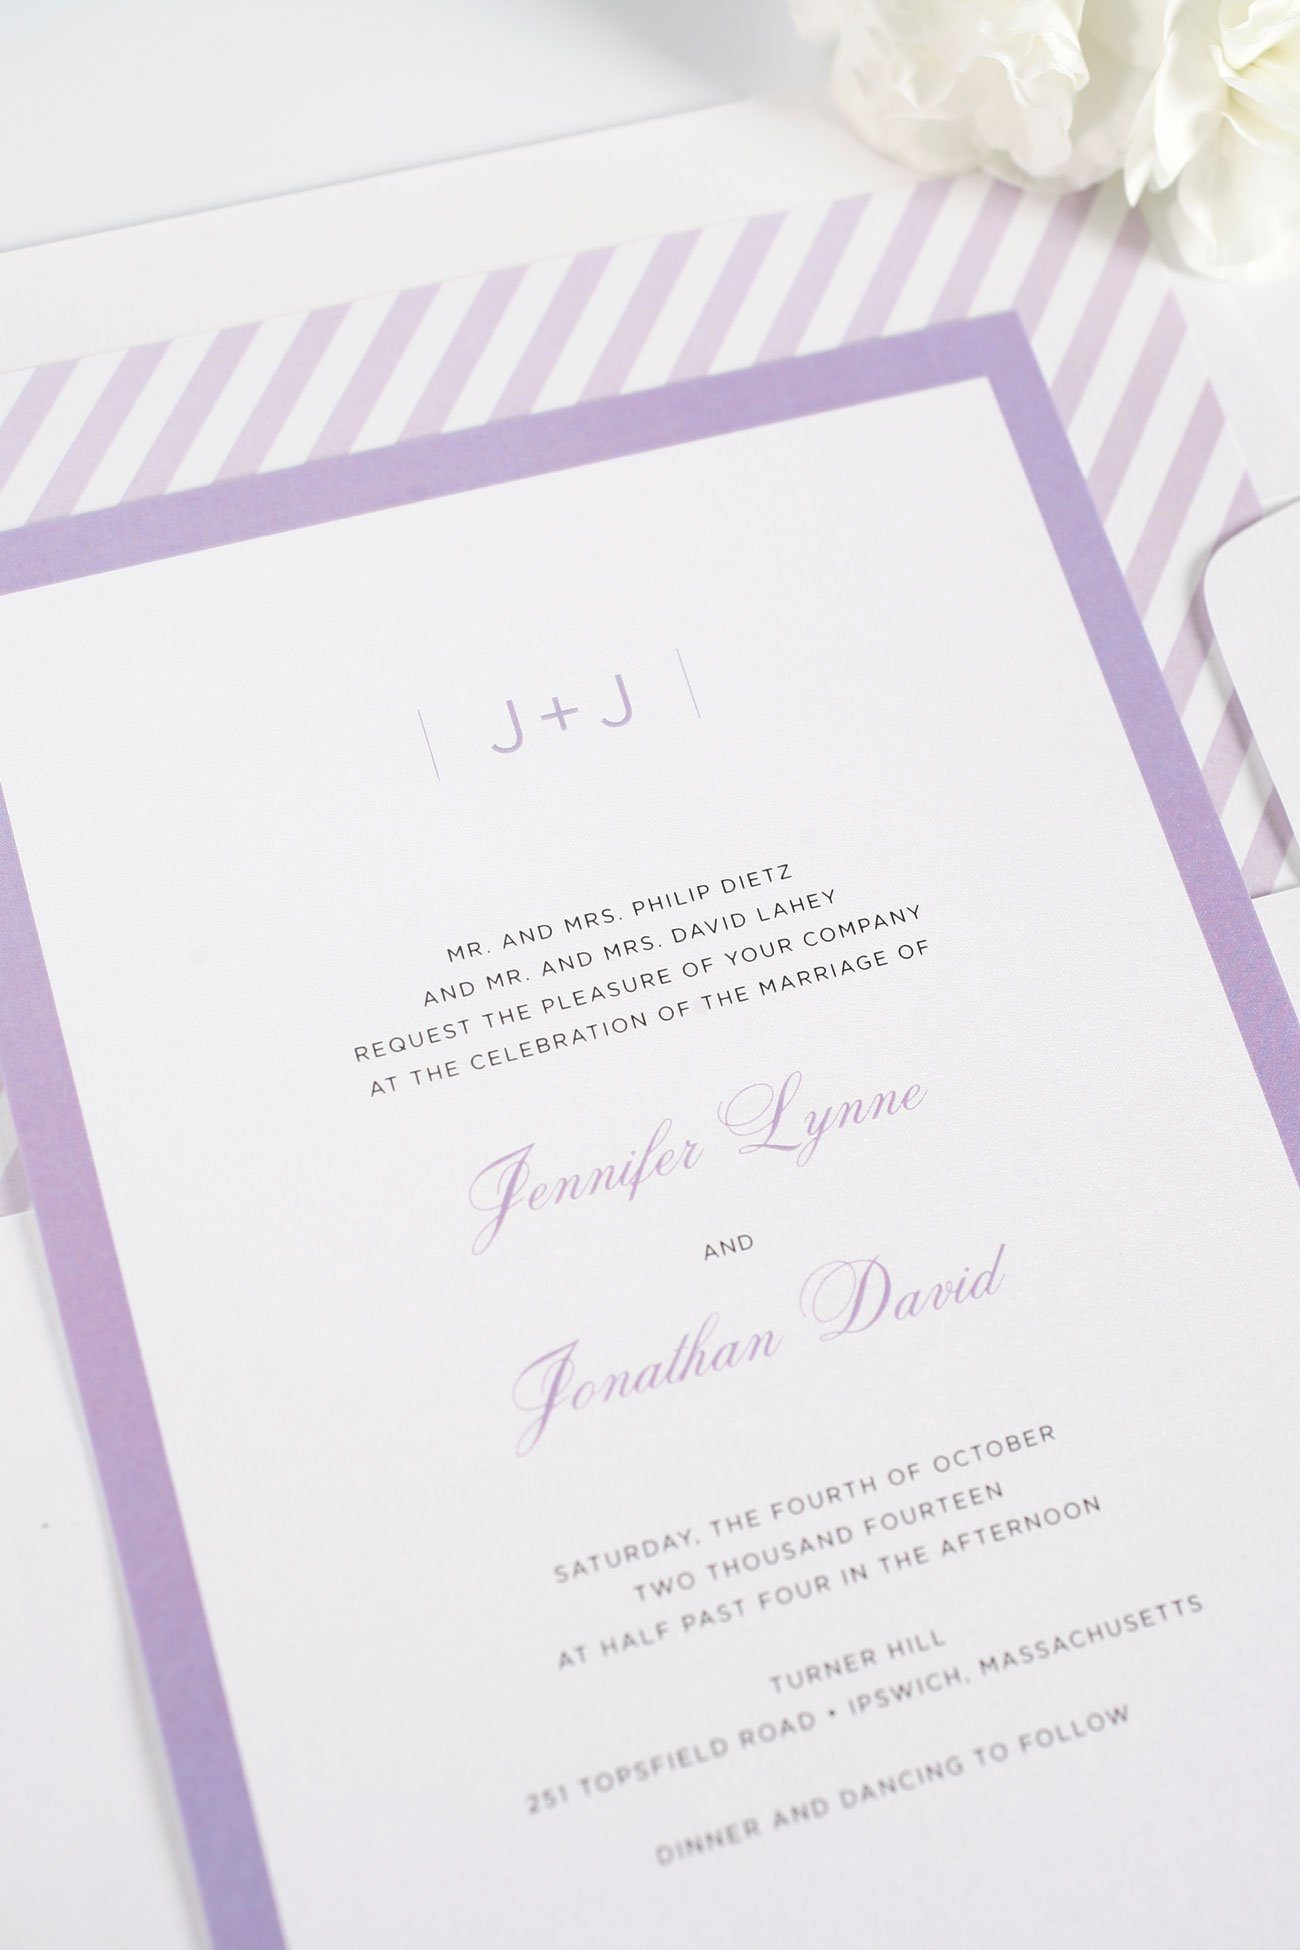 Elegant wedding invitations with borders